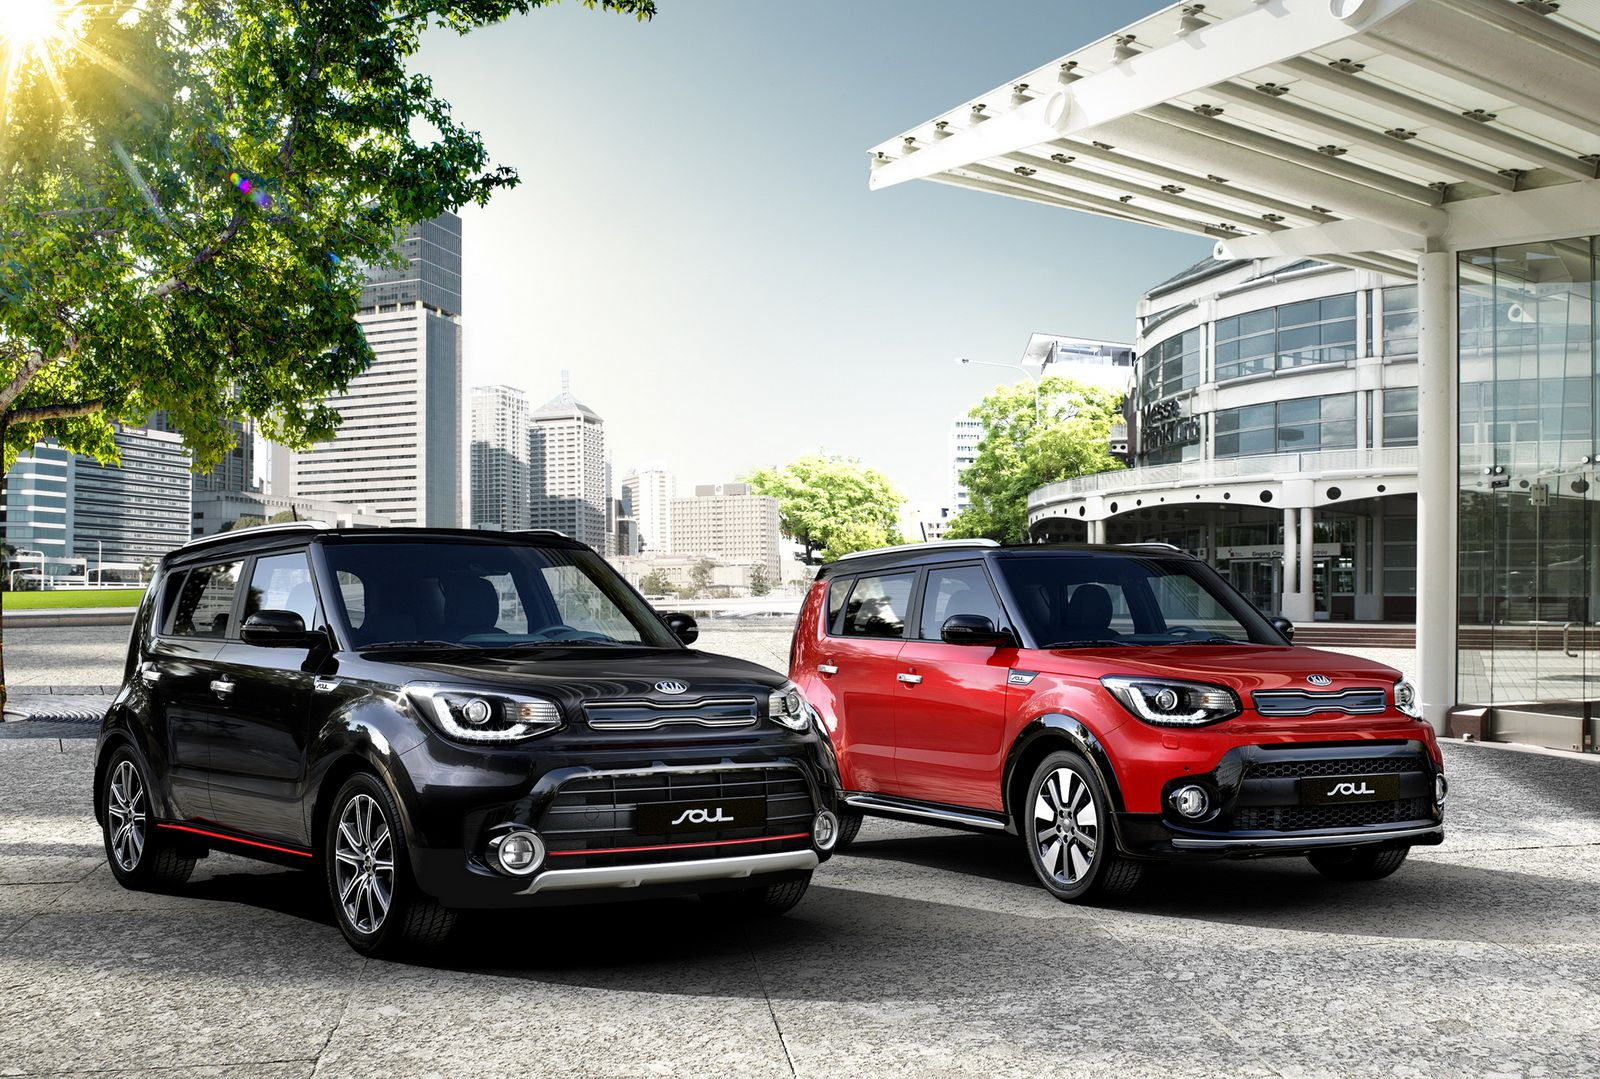 2017 Kia Soul And Carens Go On Sale In UK